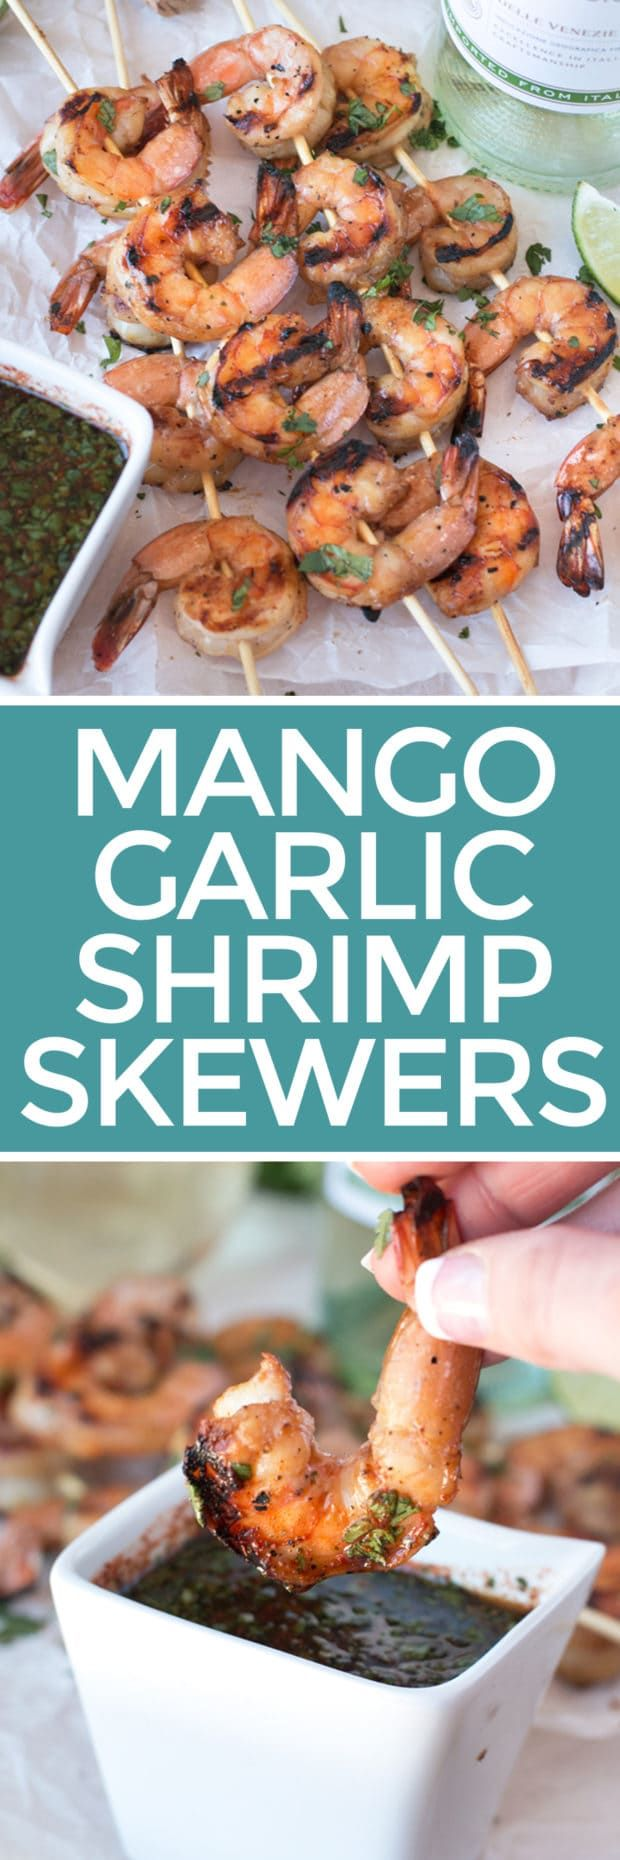 Mango Garlic Shrimp Skewers with Spicy Cilantro Dipping Sauce – Cake 'n Knife